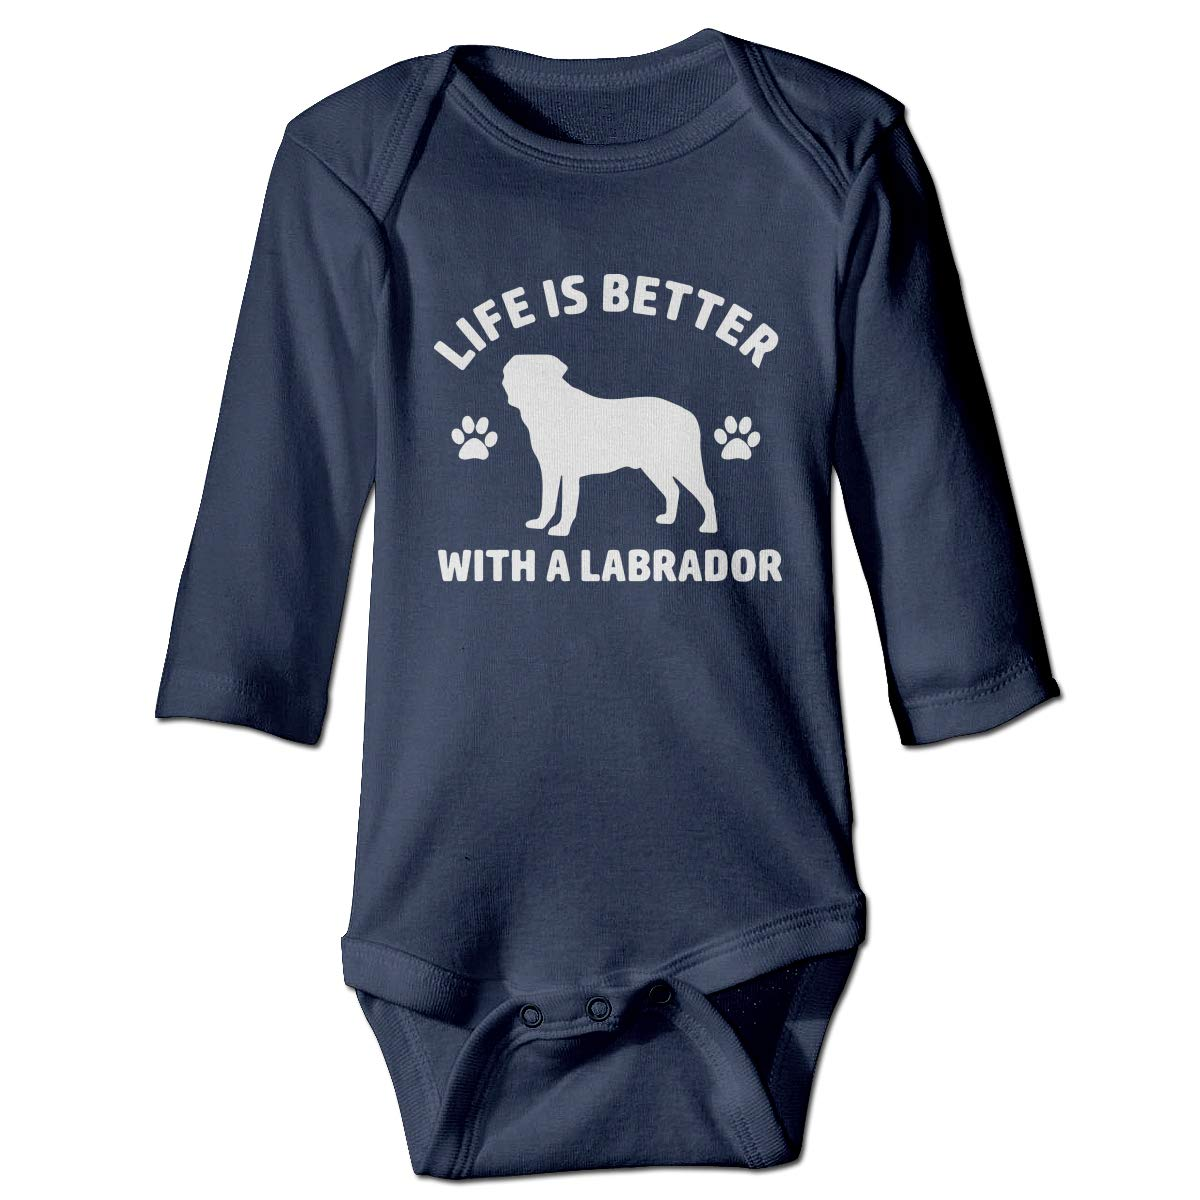 Just Born Baby Girls Baby Boys Girls Romper Bodysuit Jumpsuit Life is Better with A Labrador Long Sleeve Funny Climb Jumpsuit